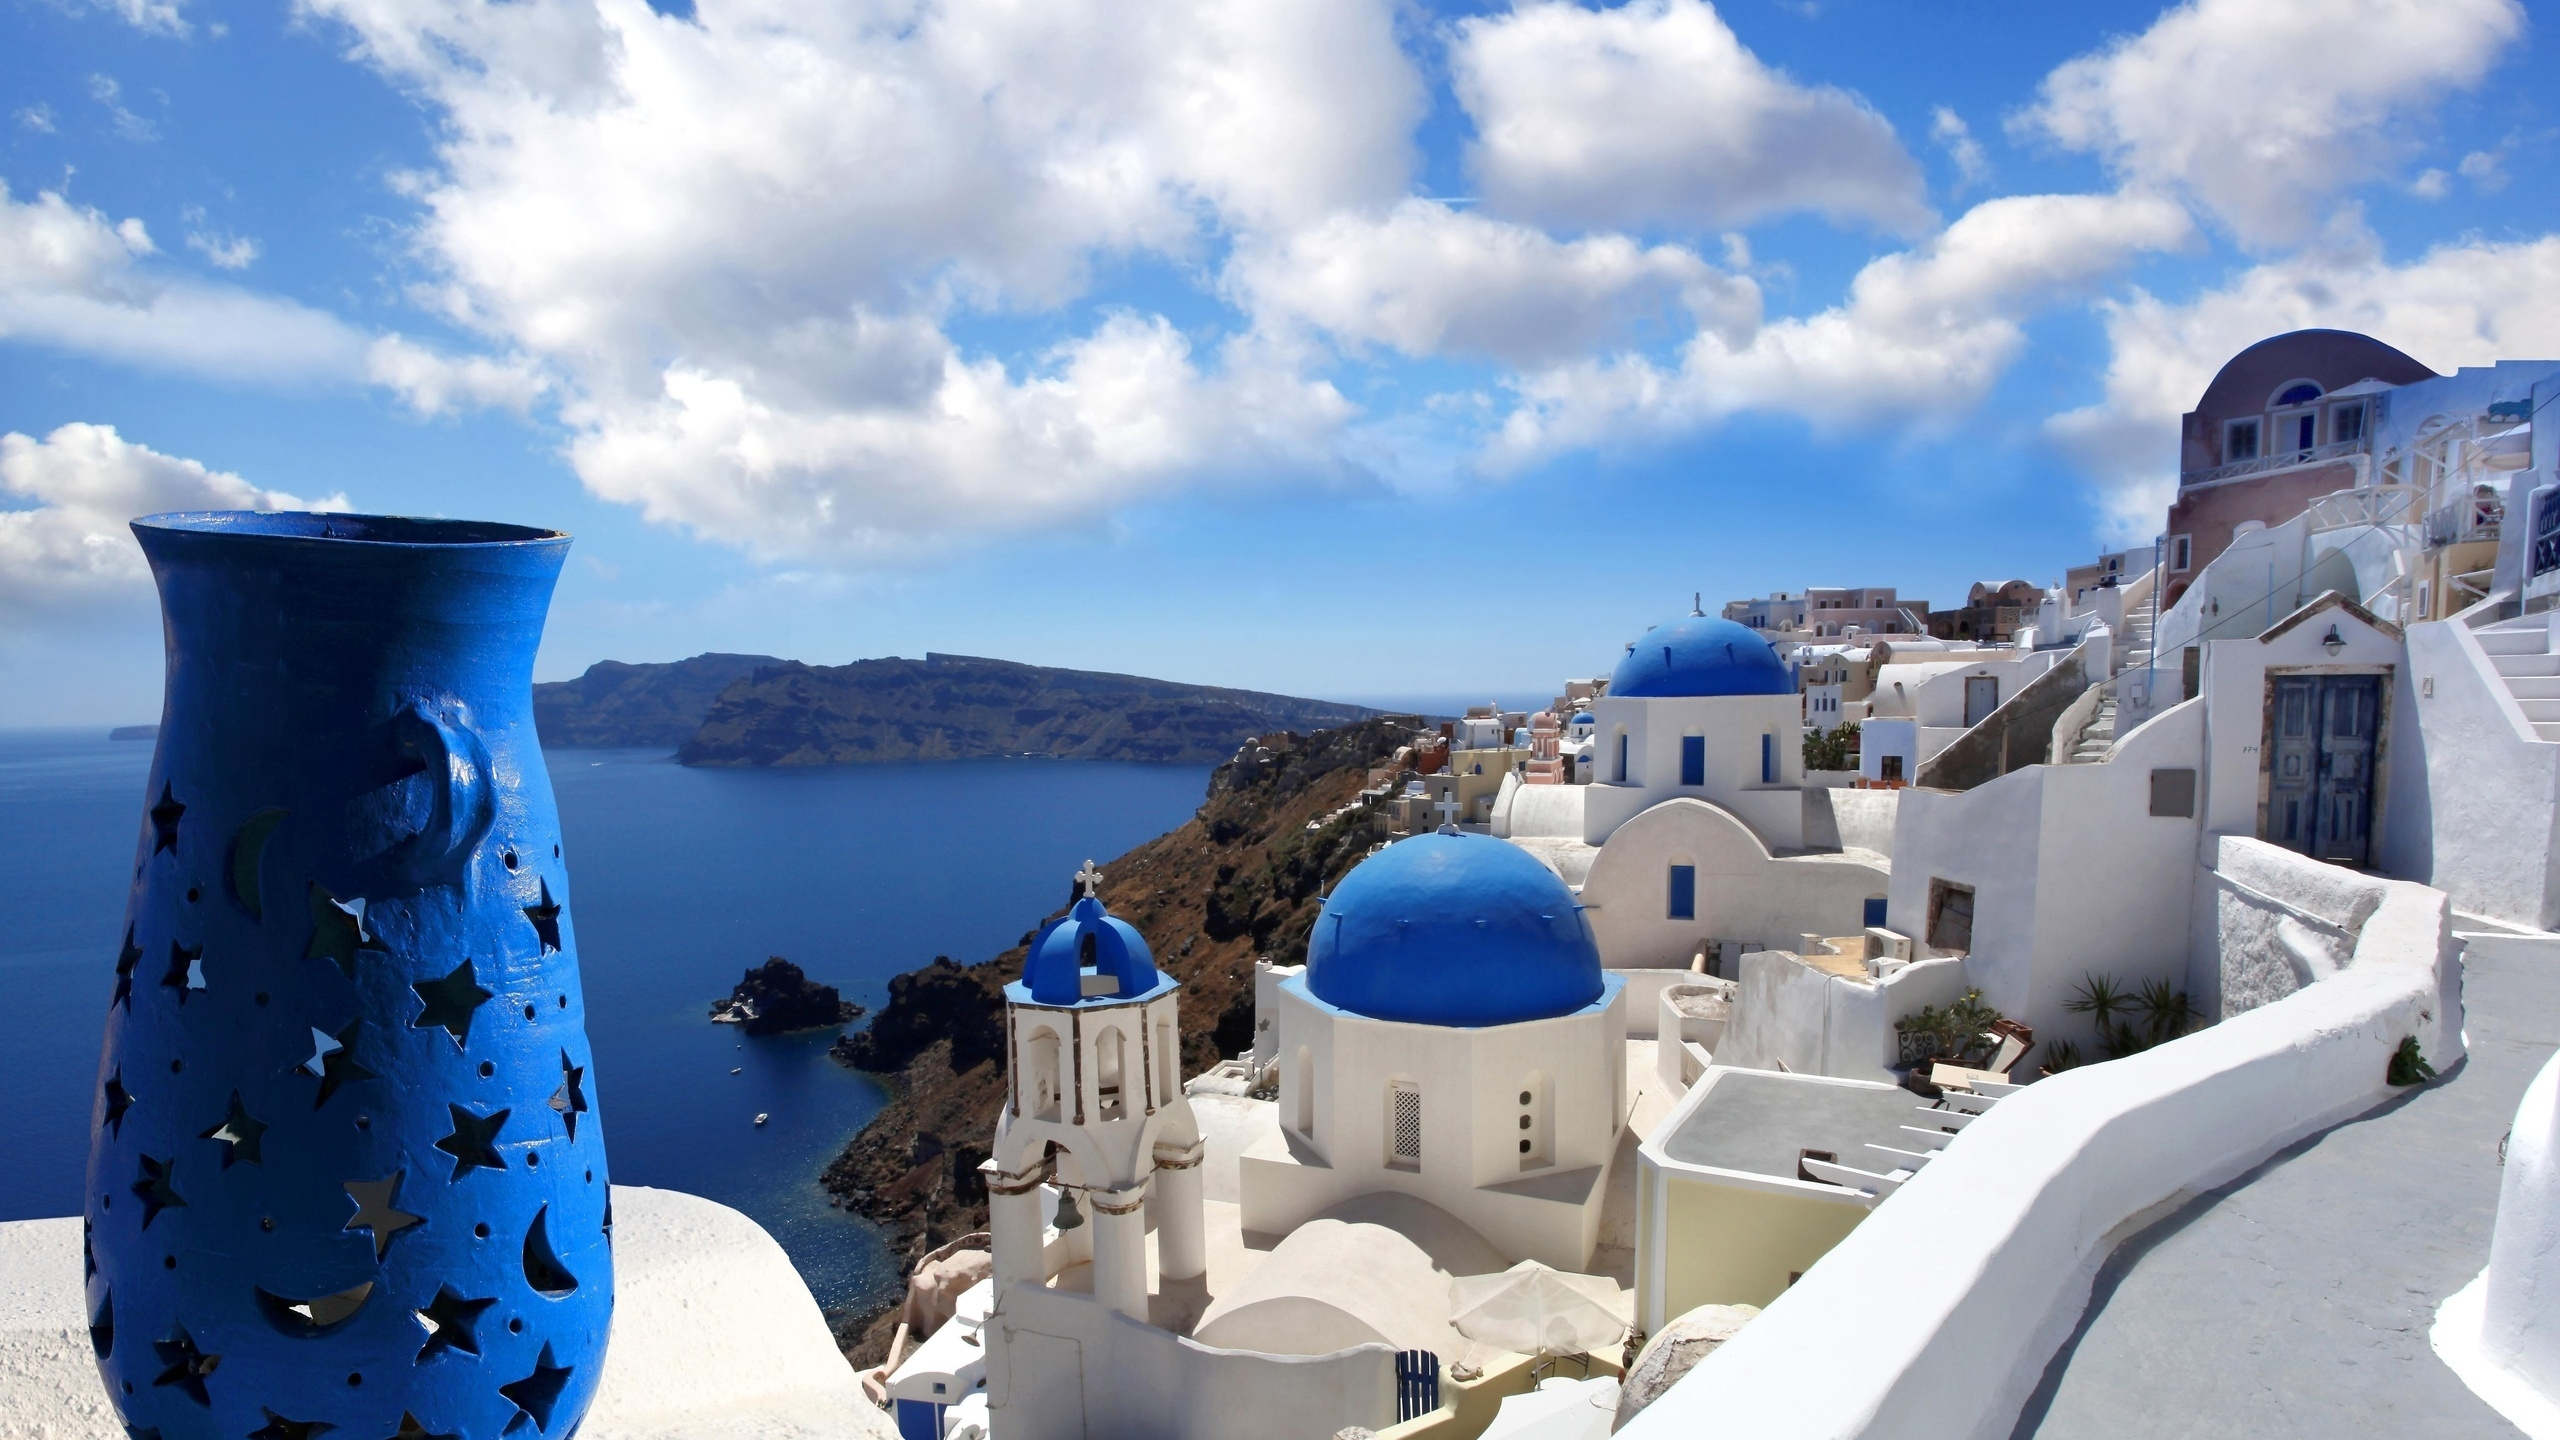 Santorini wallpapers pictures images - Ancient greece wallpaper hd ...